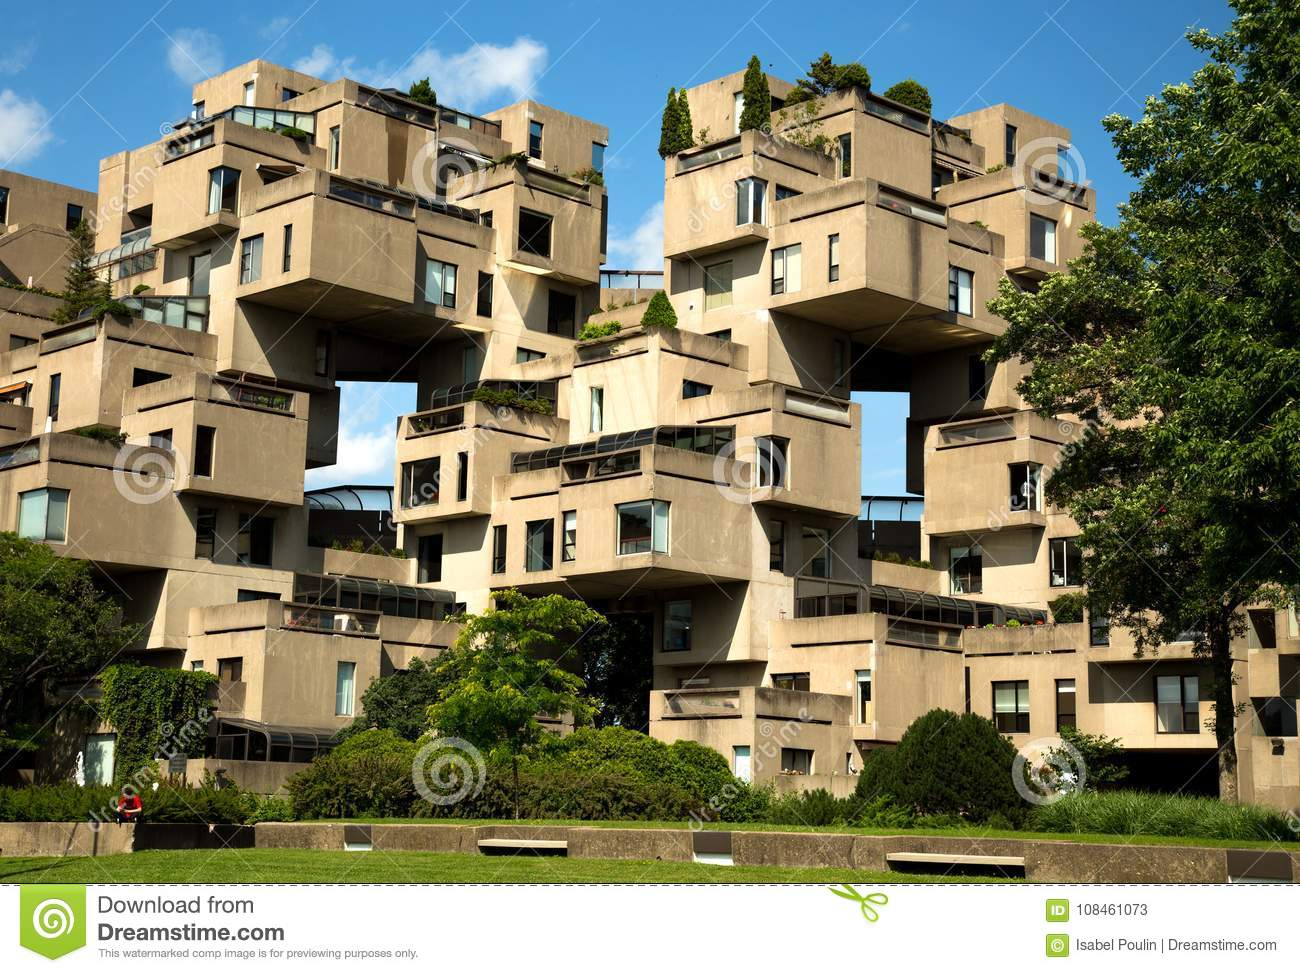 Habitat 67 In Montreal In Canada Editorial Stock Photo